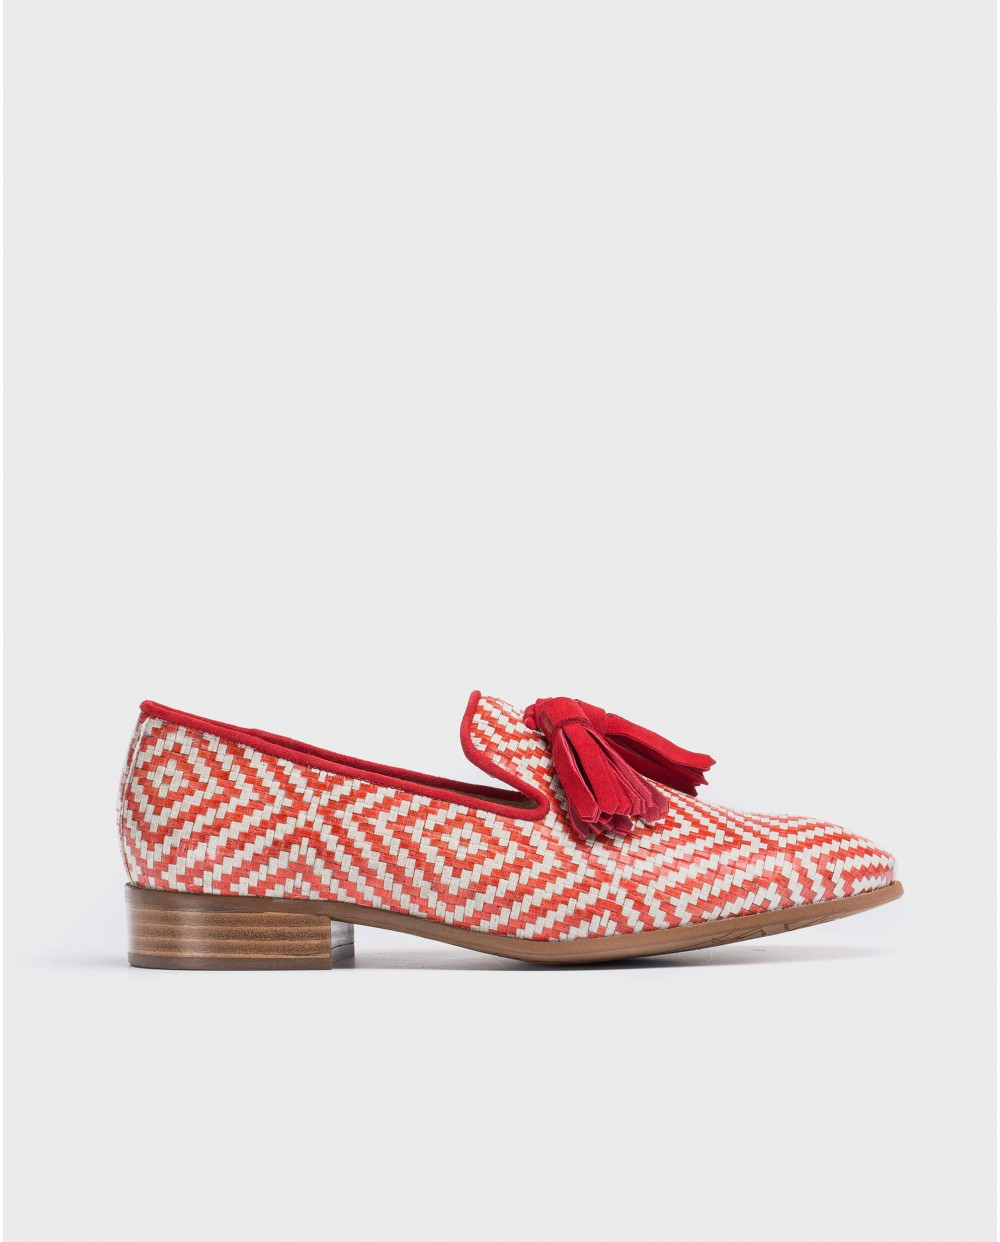 Wonders-Flat Shoes-braided leather moccasin